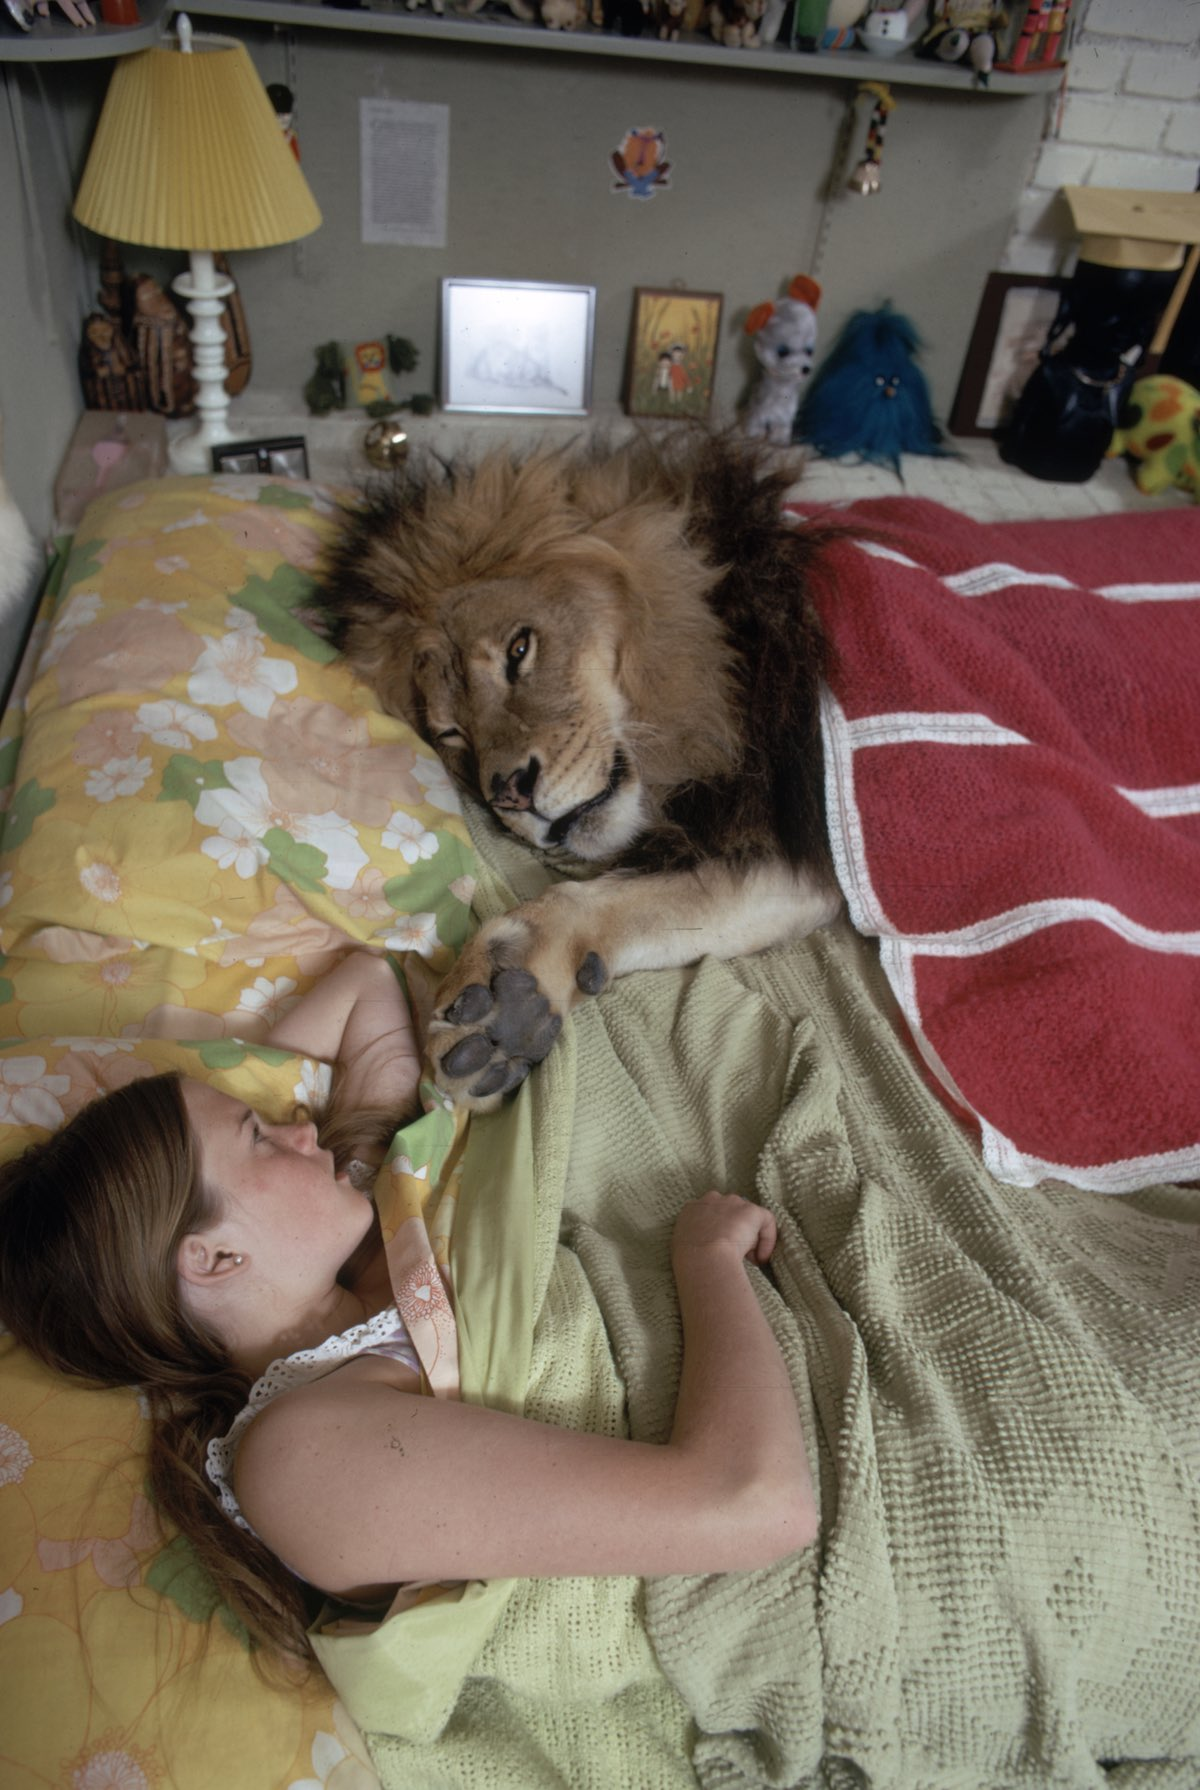 Subject: Pet Lion Neil sleeping with Melanie Griffith In the home of Noel Marshall and her Mom Tippi Hedren. Sherman Oaks, California 1971 Photographer- Michael Rougier Time INc Owned Merlin-1200544